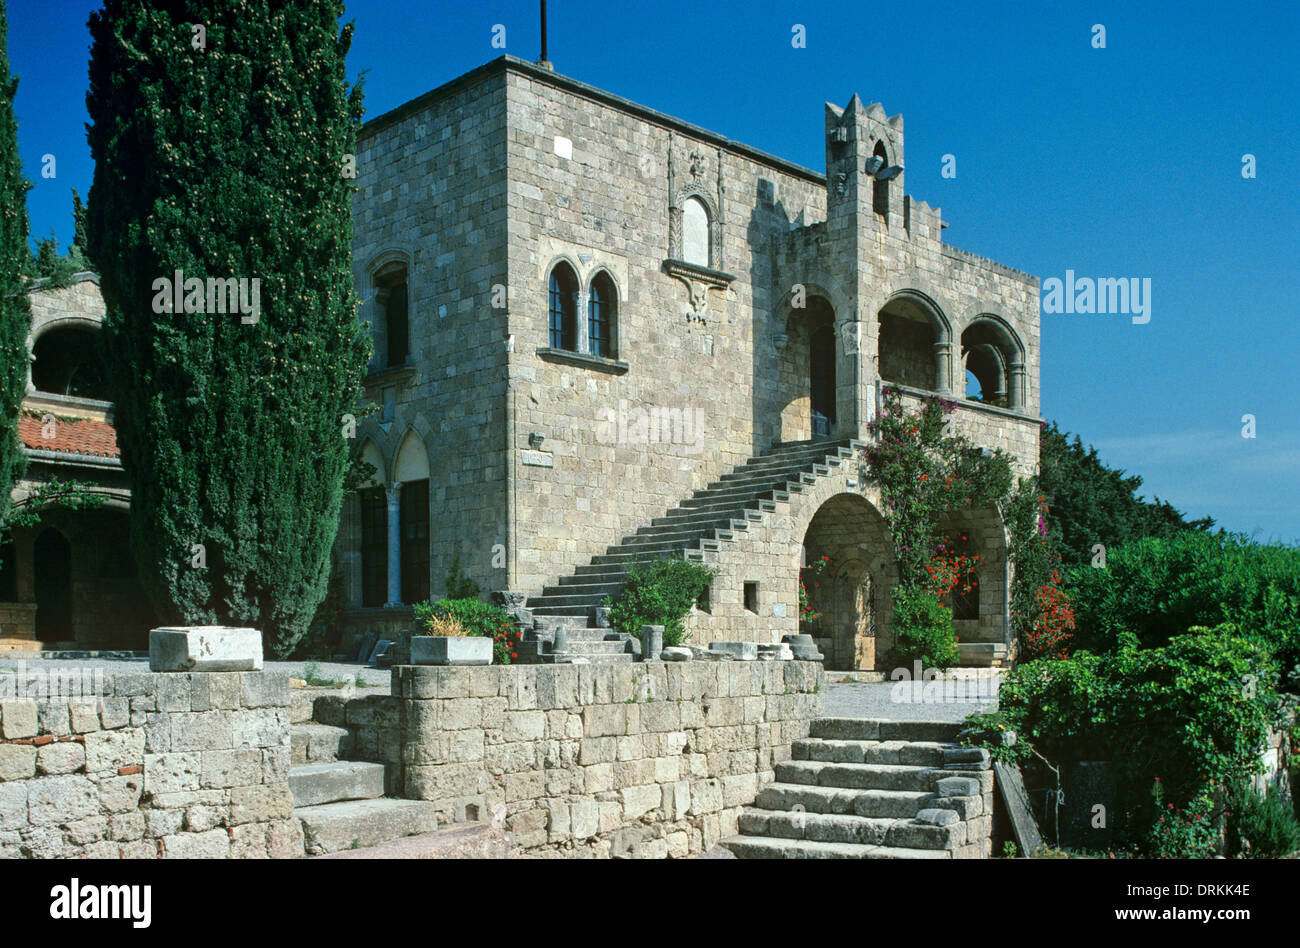 Monastery of Filerimos or Philerimos founded by Knights of Saint John at Ialyssos or Ialysos Rhodes Greece - Stock Image